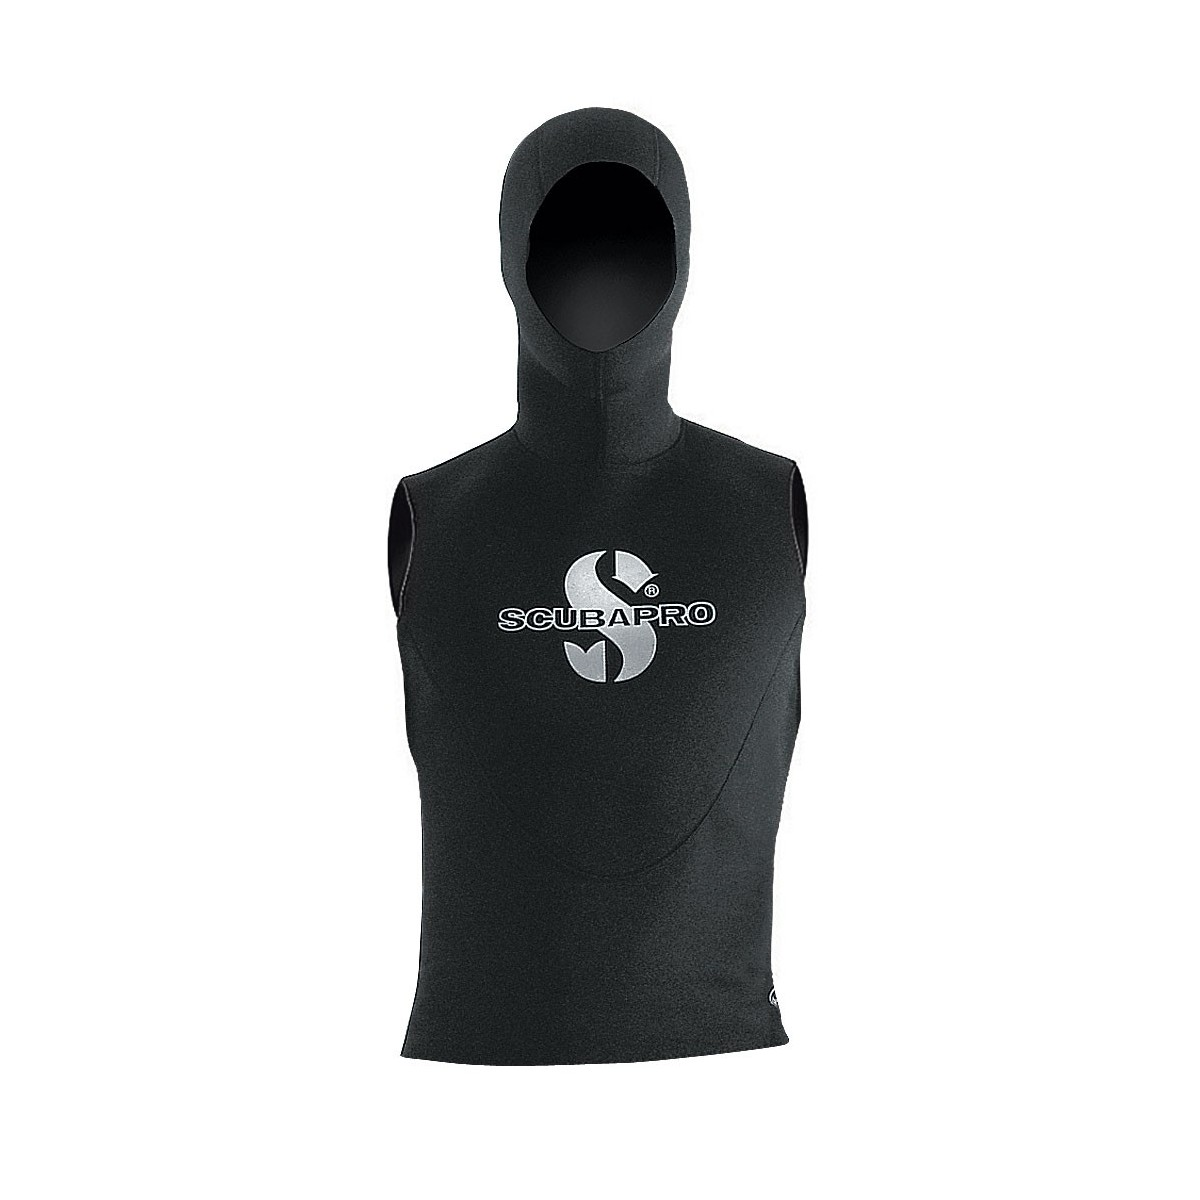 Scubapro Everflex Hooded Diving Vest 2.5mm